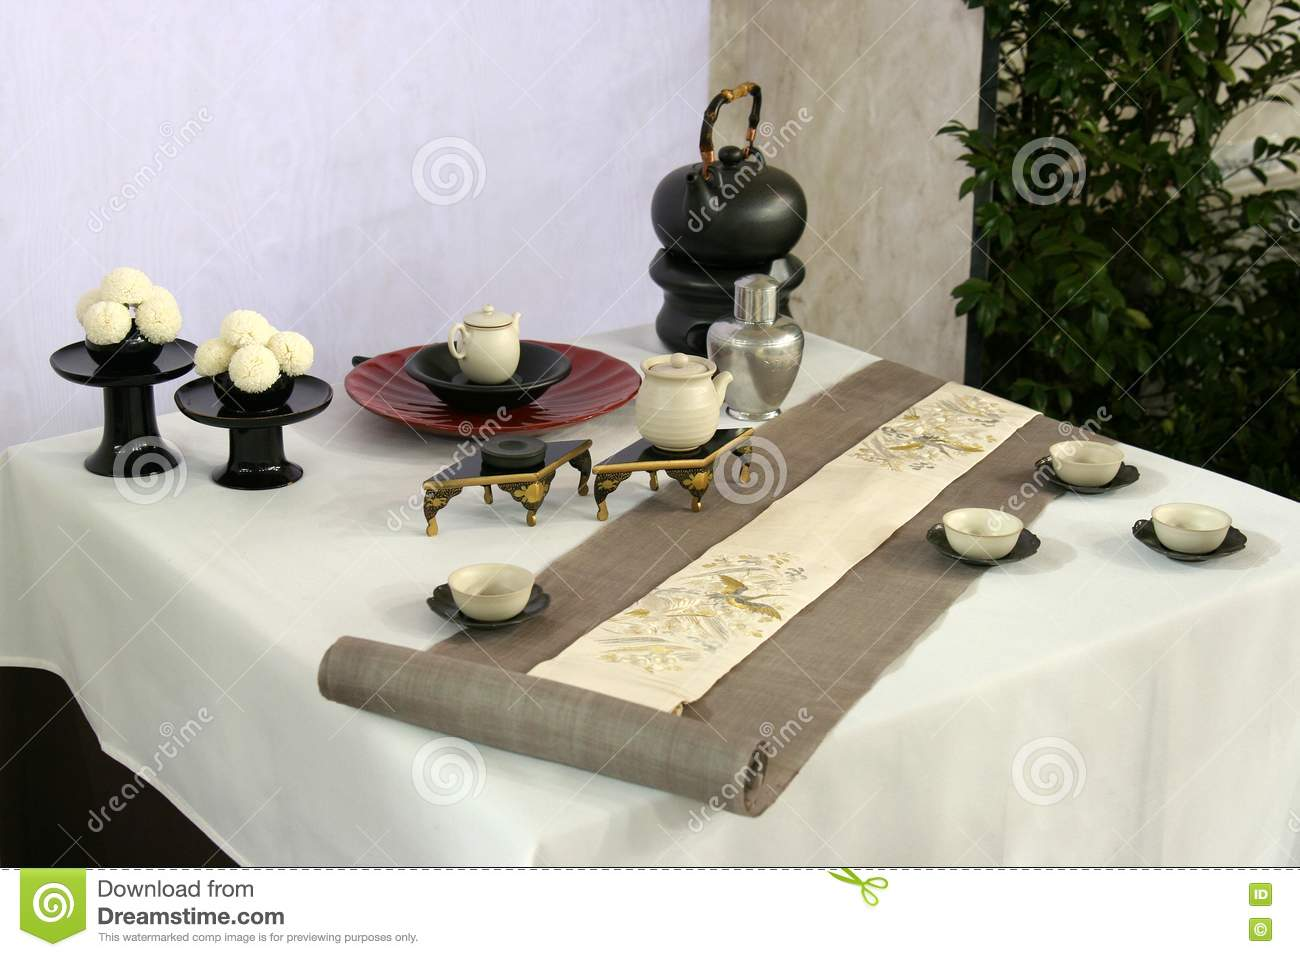 table design in japan stock photos image 8704153